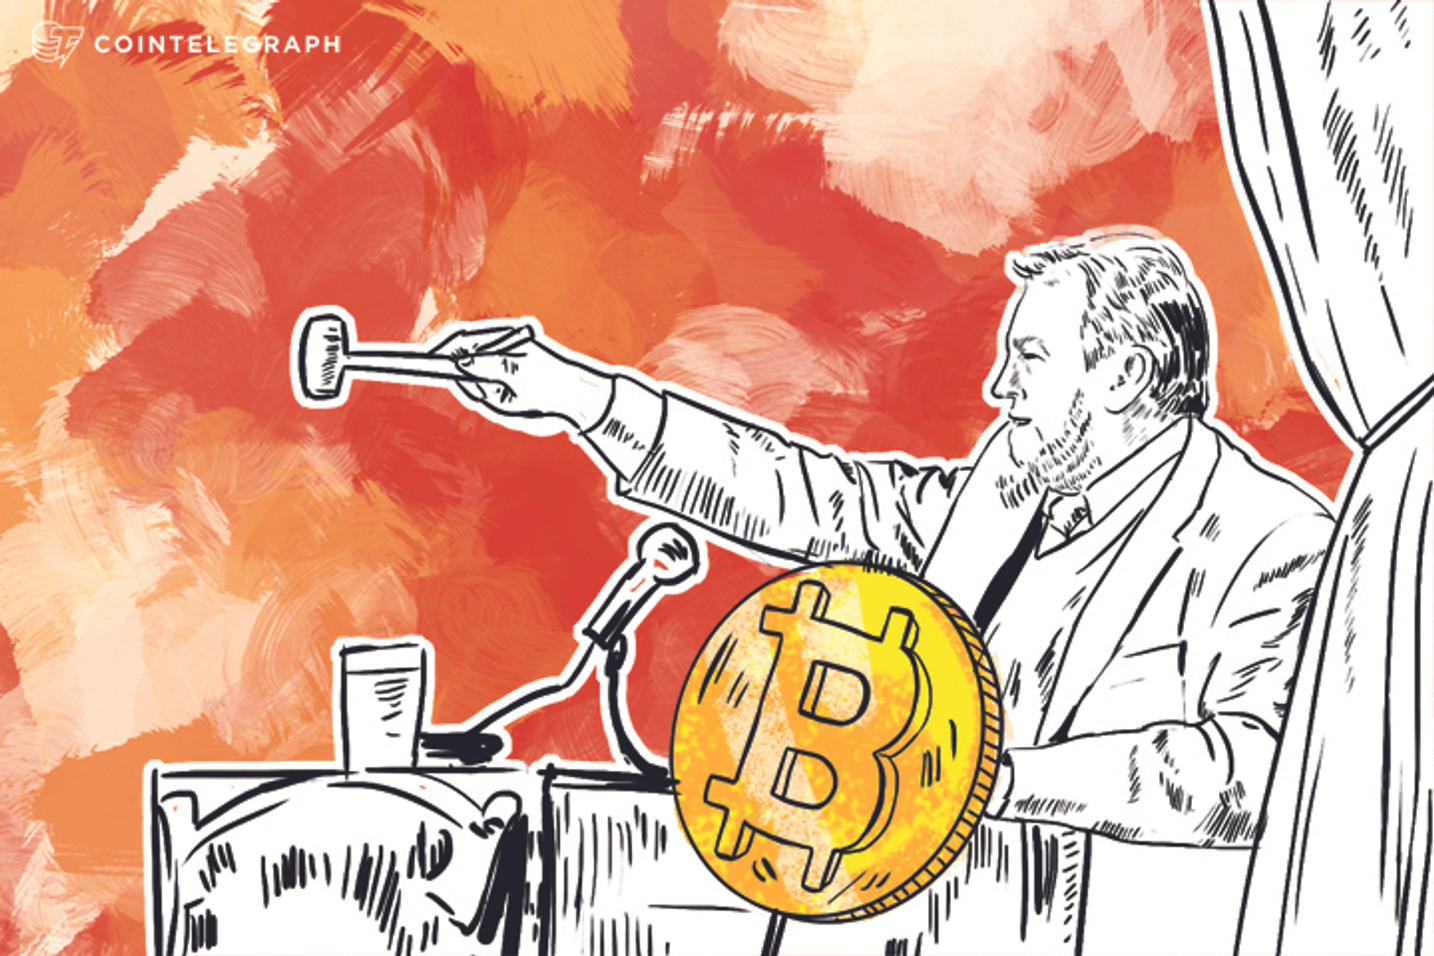 Second U.S. Marshal Bitcoin Auction Takes Place, Gets 11 Bidders